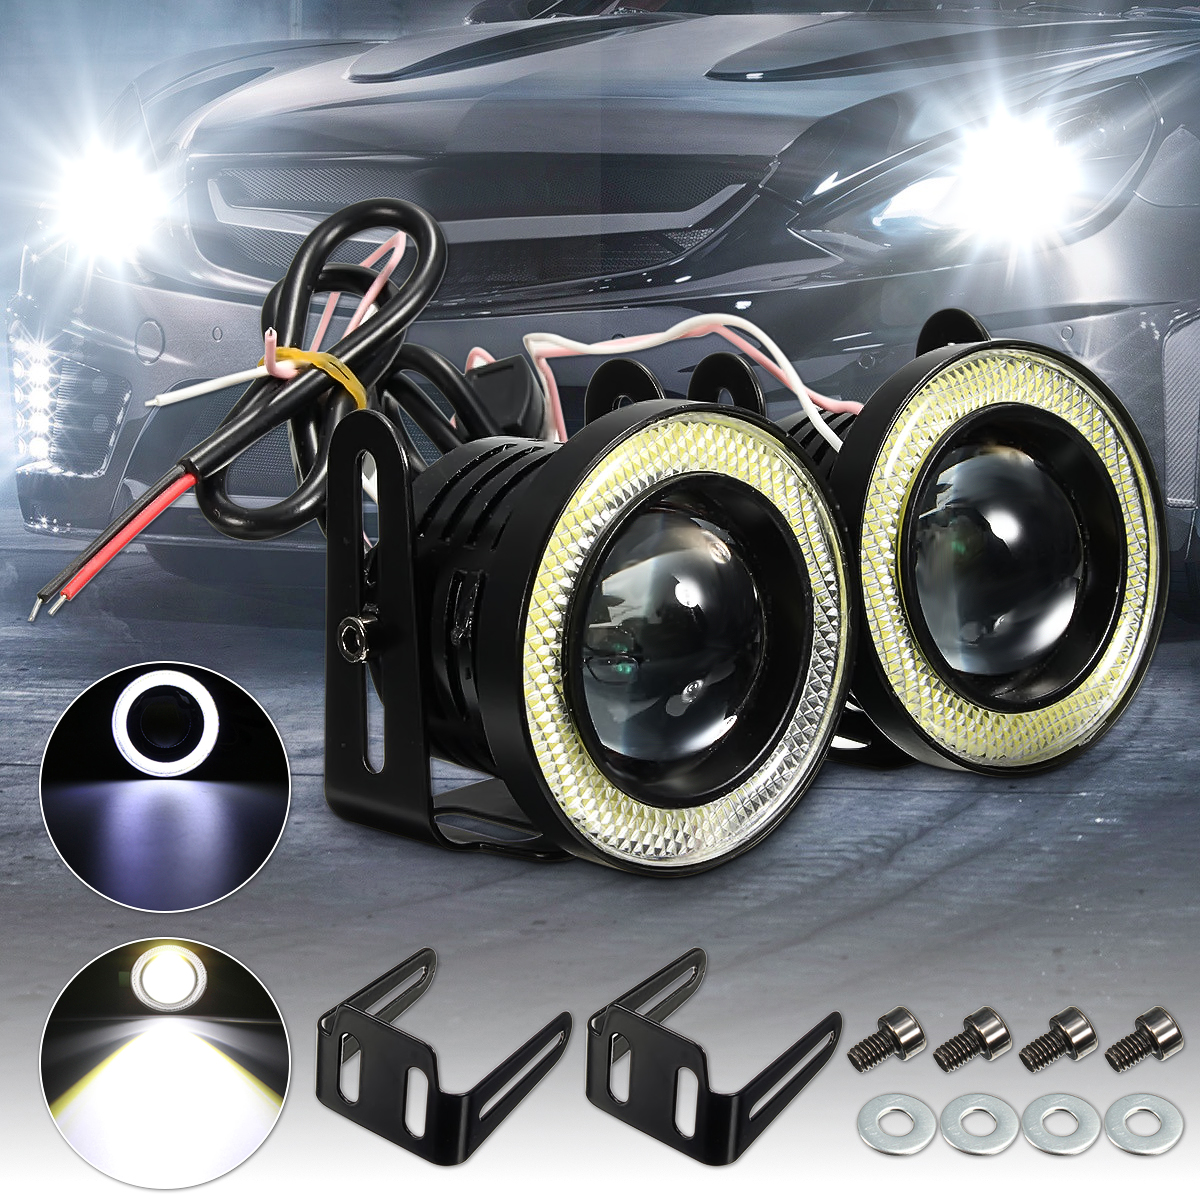 Pair 2.5 64mm Projector COB LED Car Fog Light Halo Angel Eyes Rings DRL White 12V Road Fog Lamp Daytime running light Universal universal car fog lamp 2 pcs lot daytime driving lamp 2 5 inch 64mm drl super bright cob angel eyes fog lights projector lens